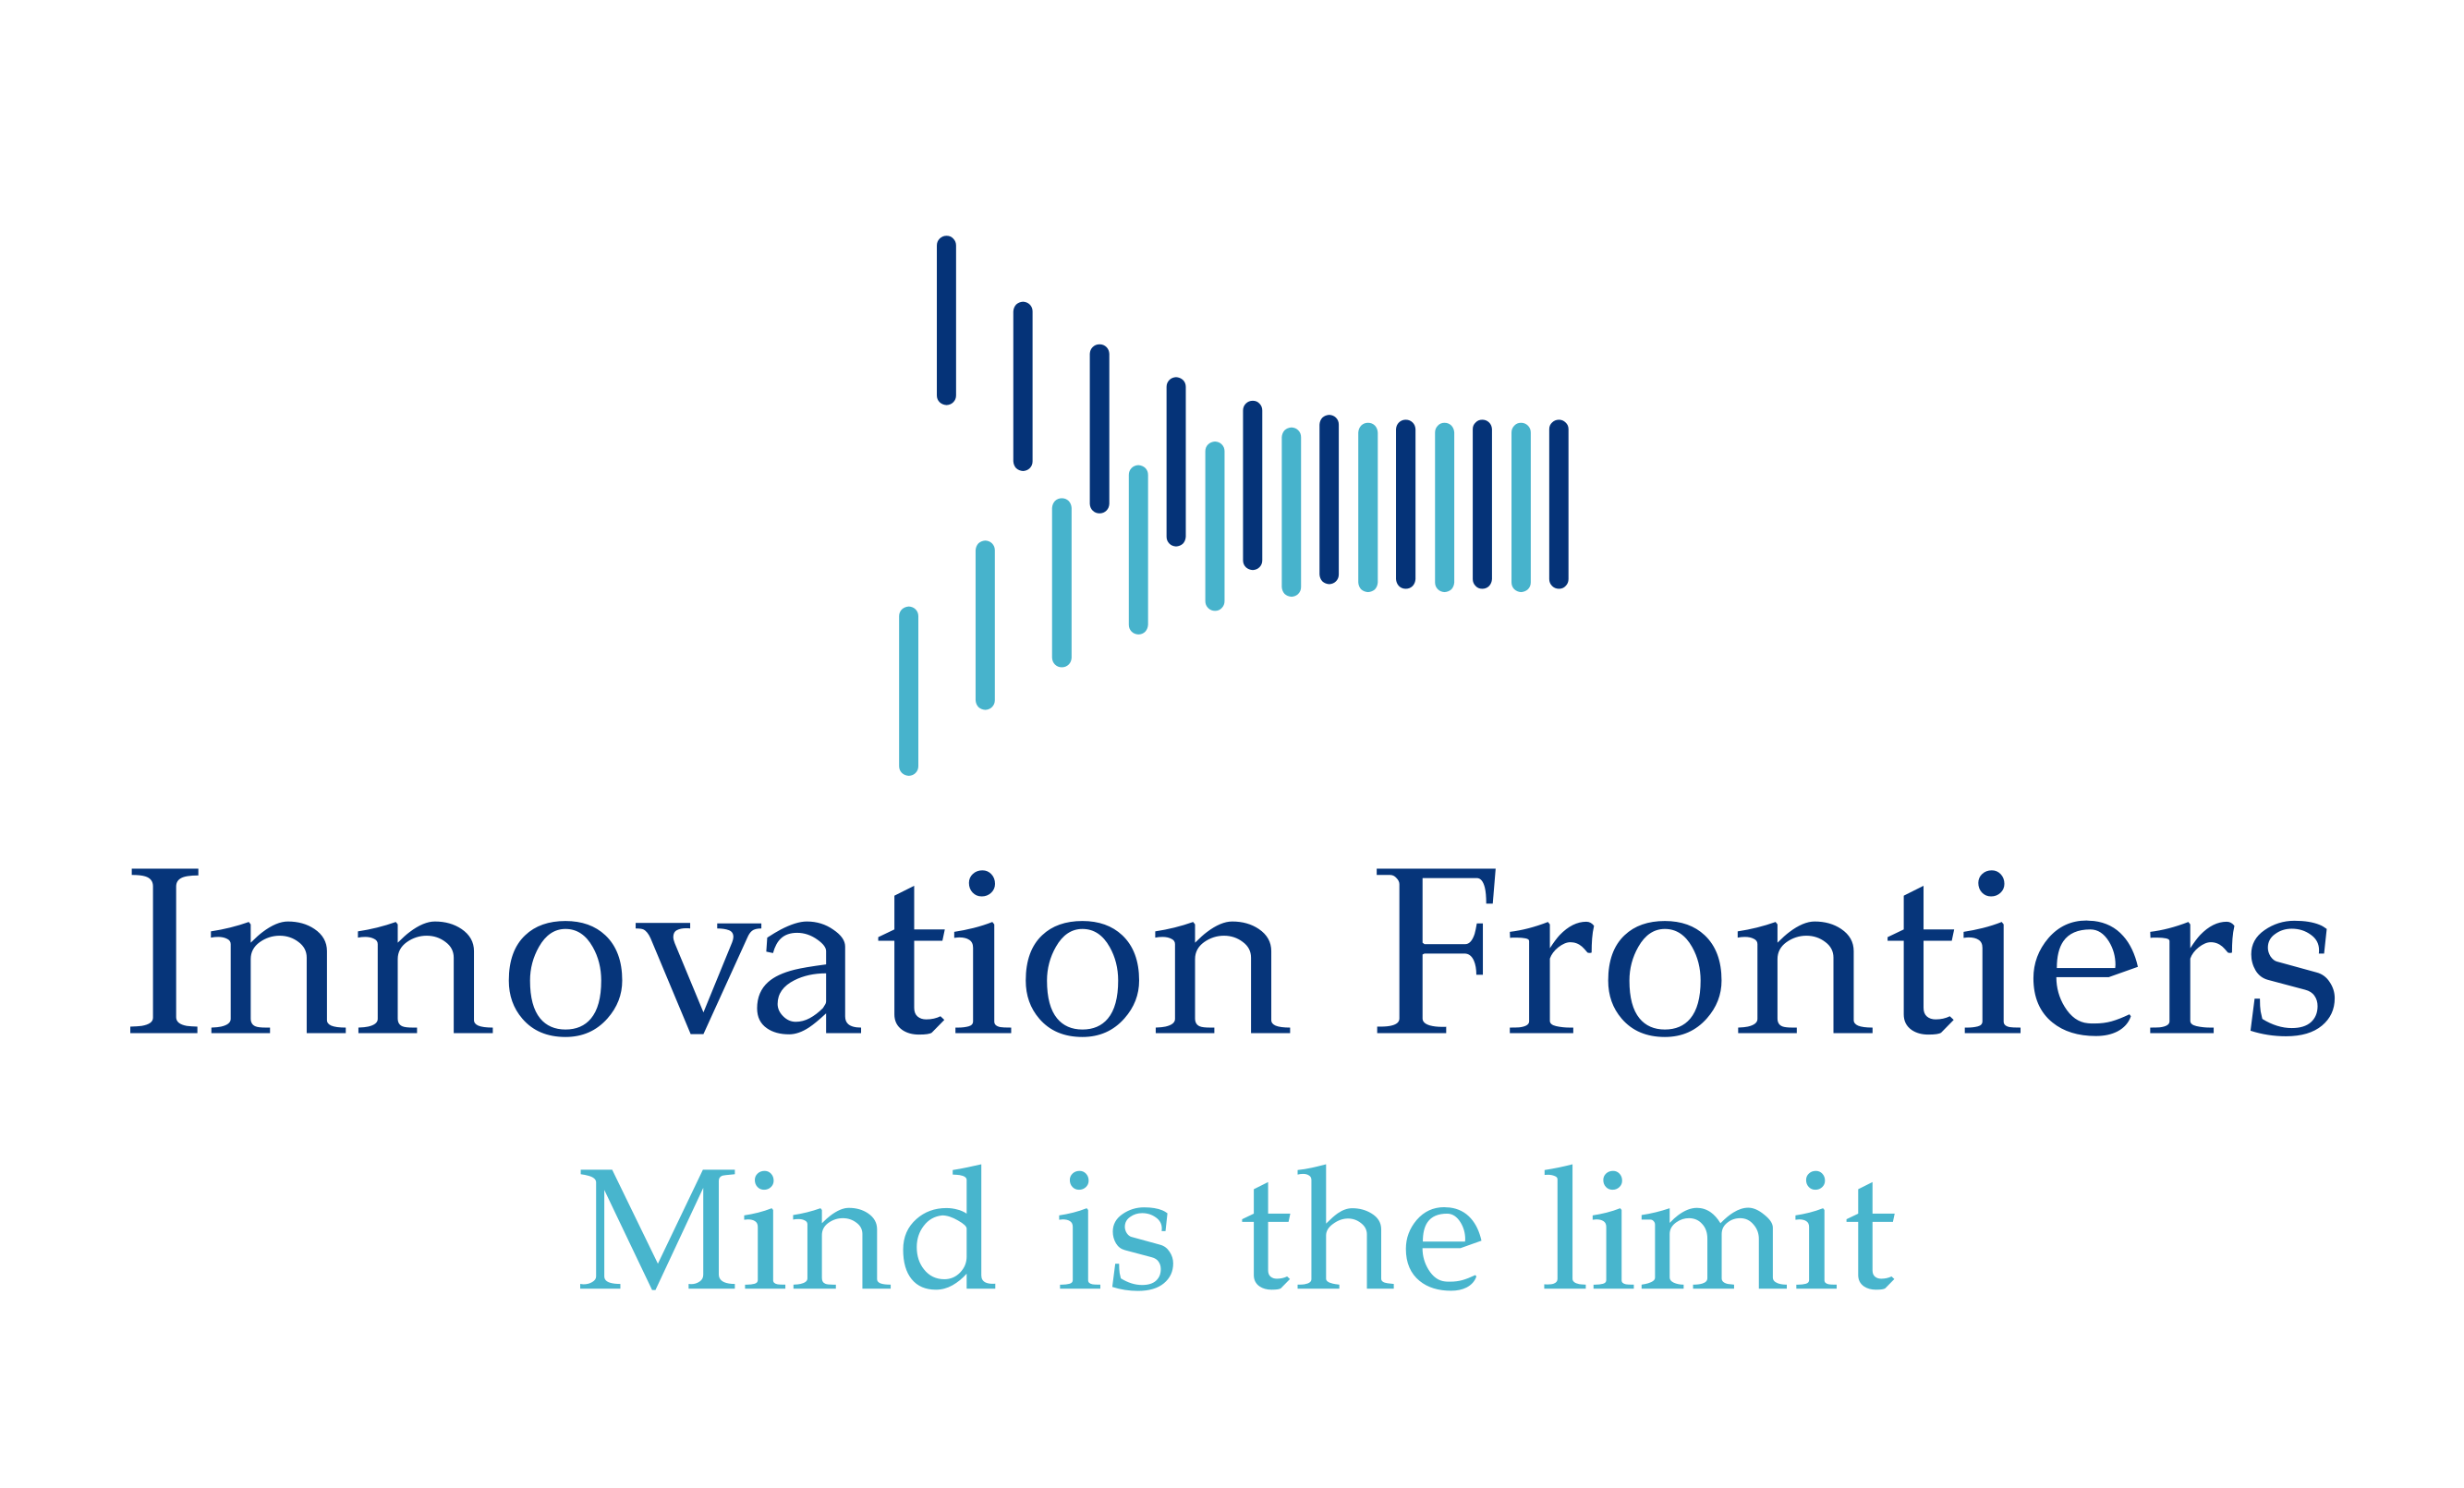 Innovation Frontiers